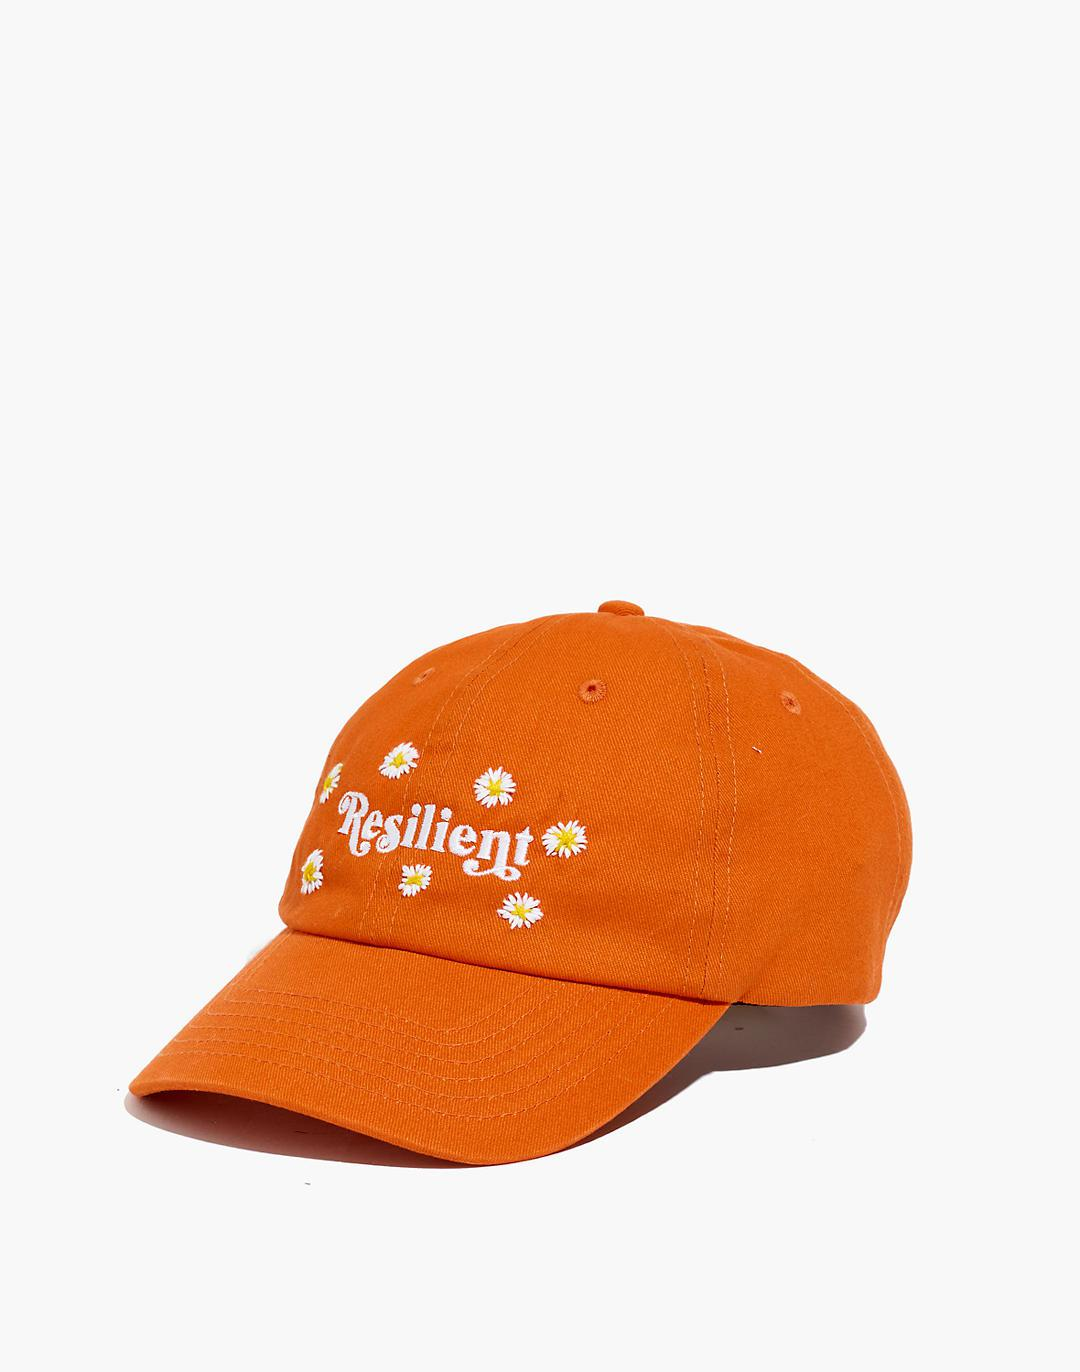 Feminist Goods Co. Daisies Embroidered Resilient Baseball Cap